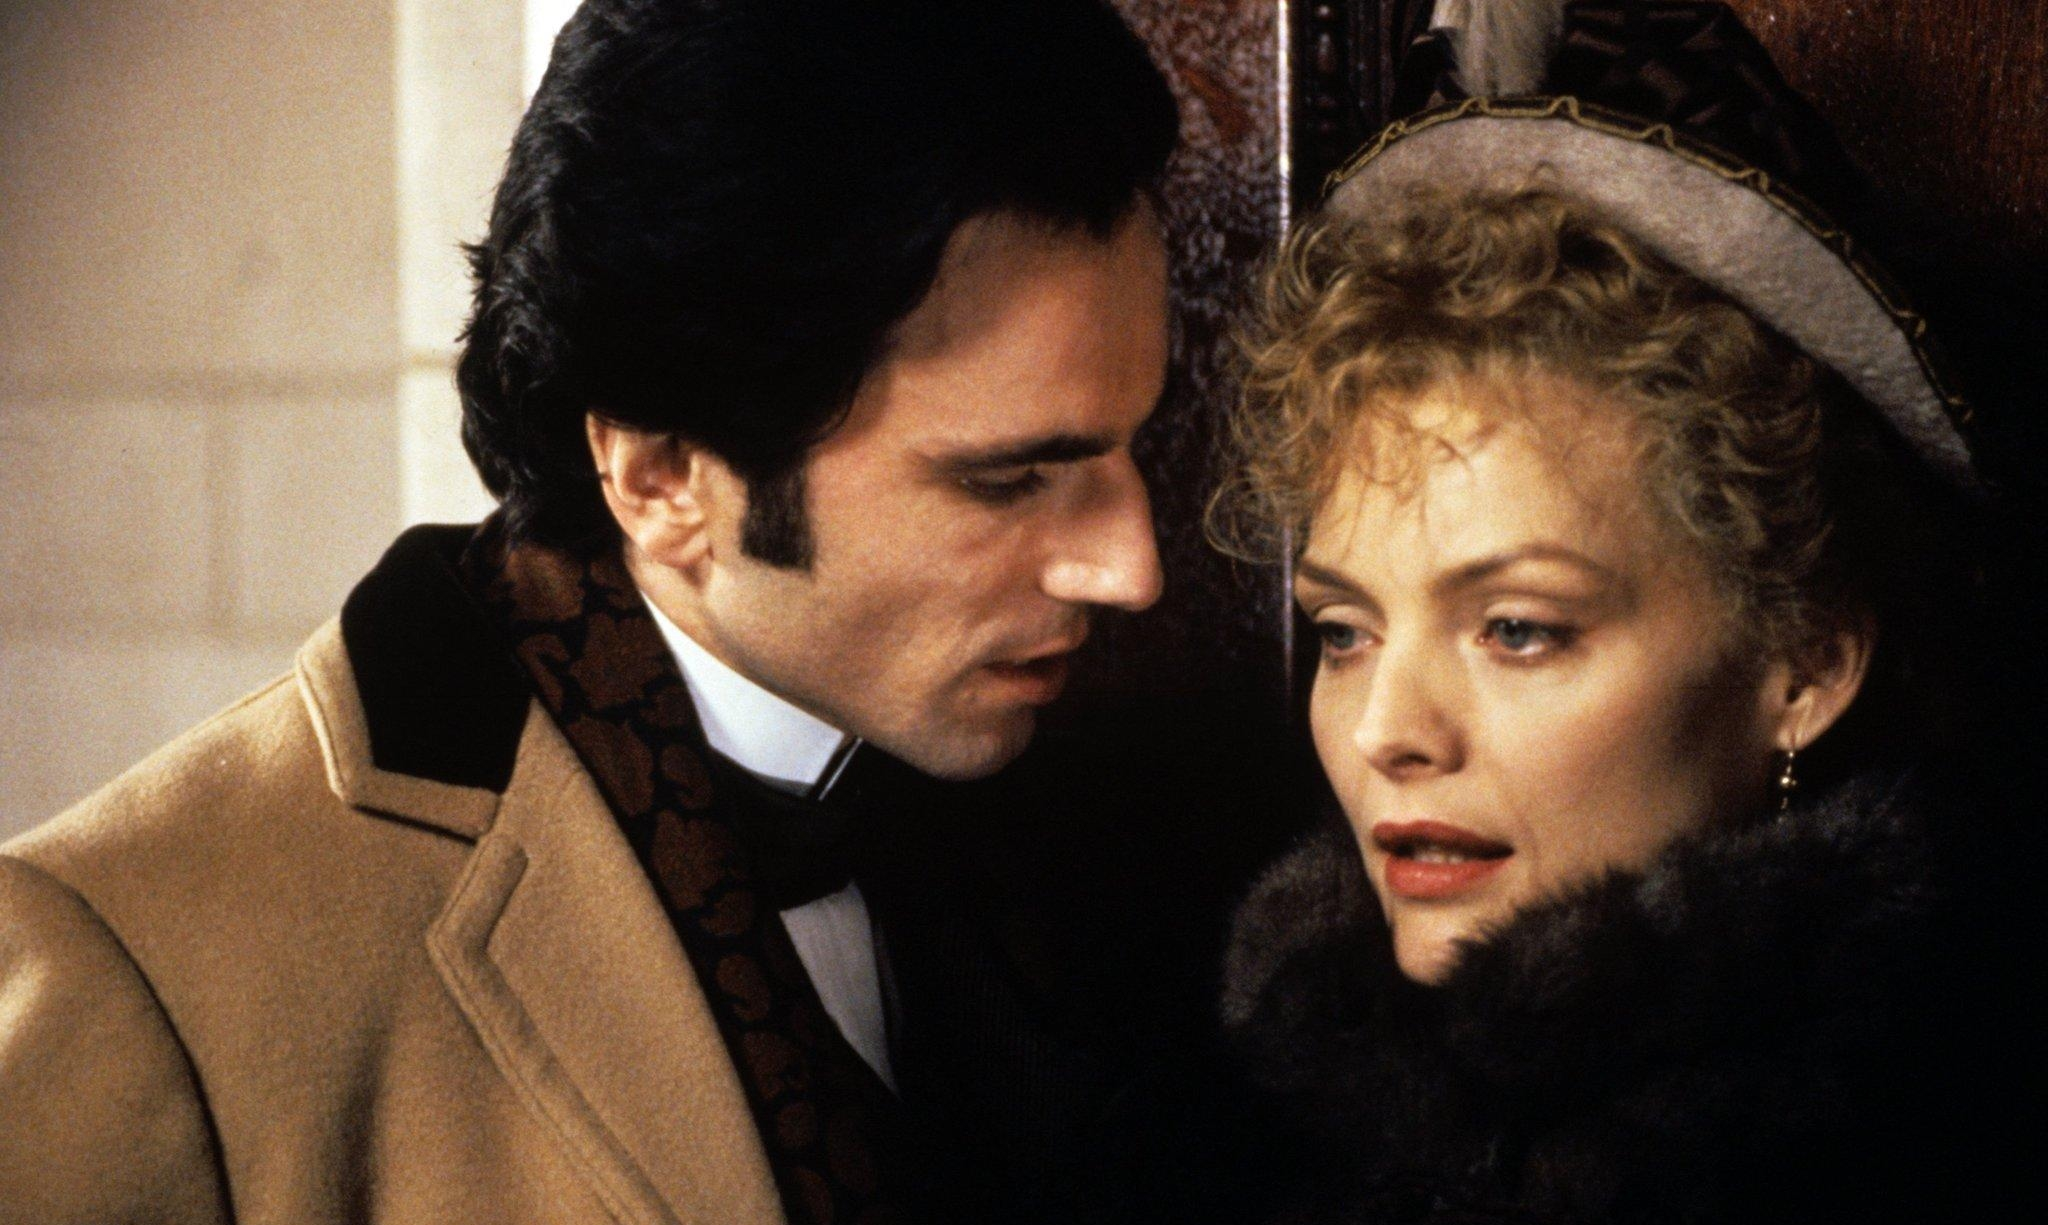 Film2.The Age of Innocence